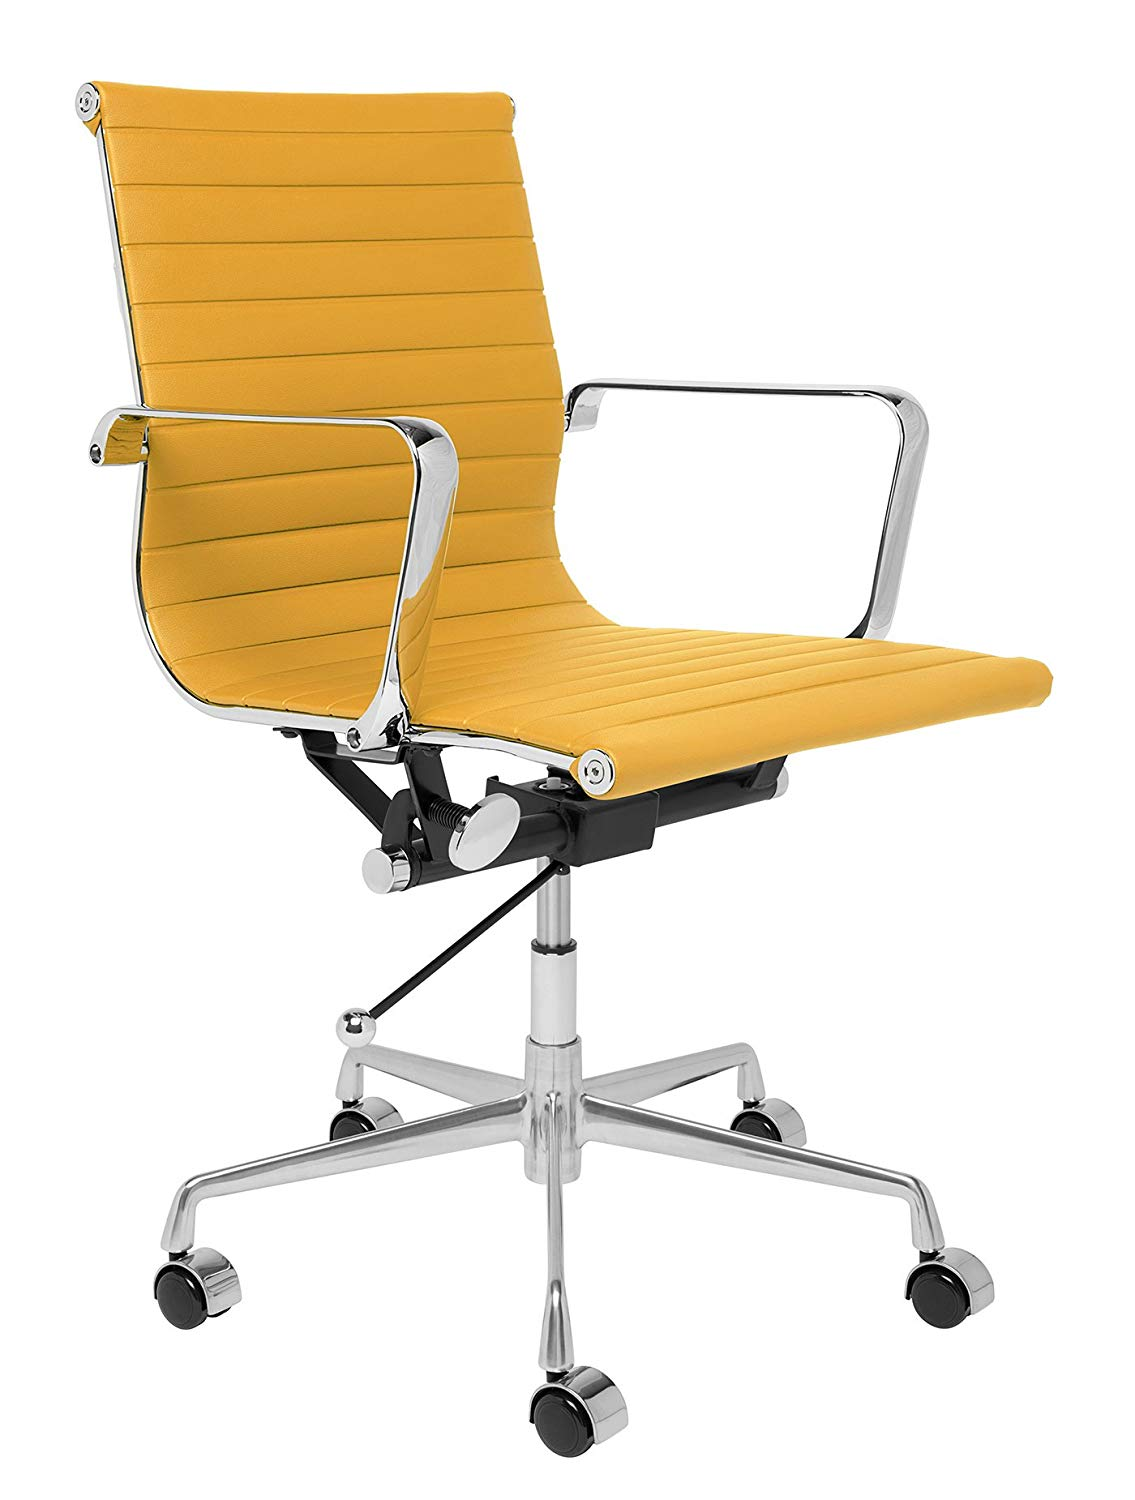 Ribbed Mid Century Mod Office Chair